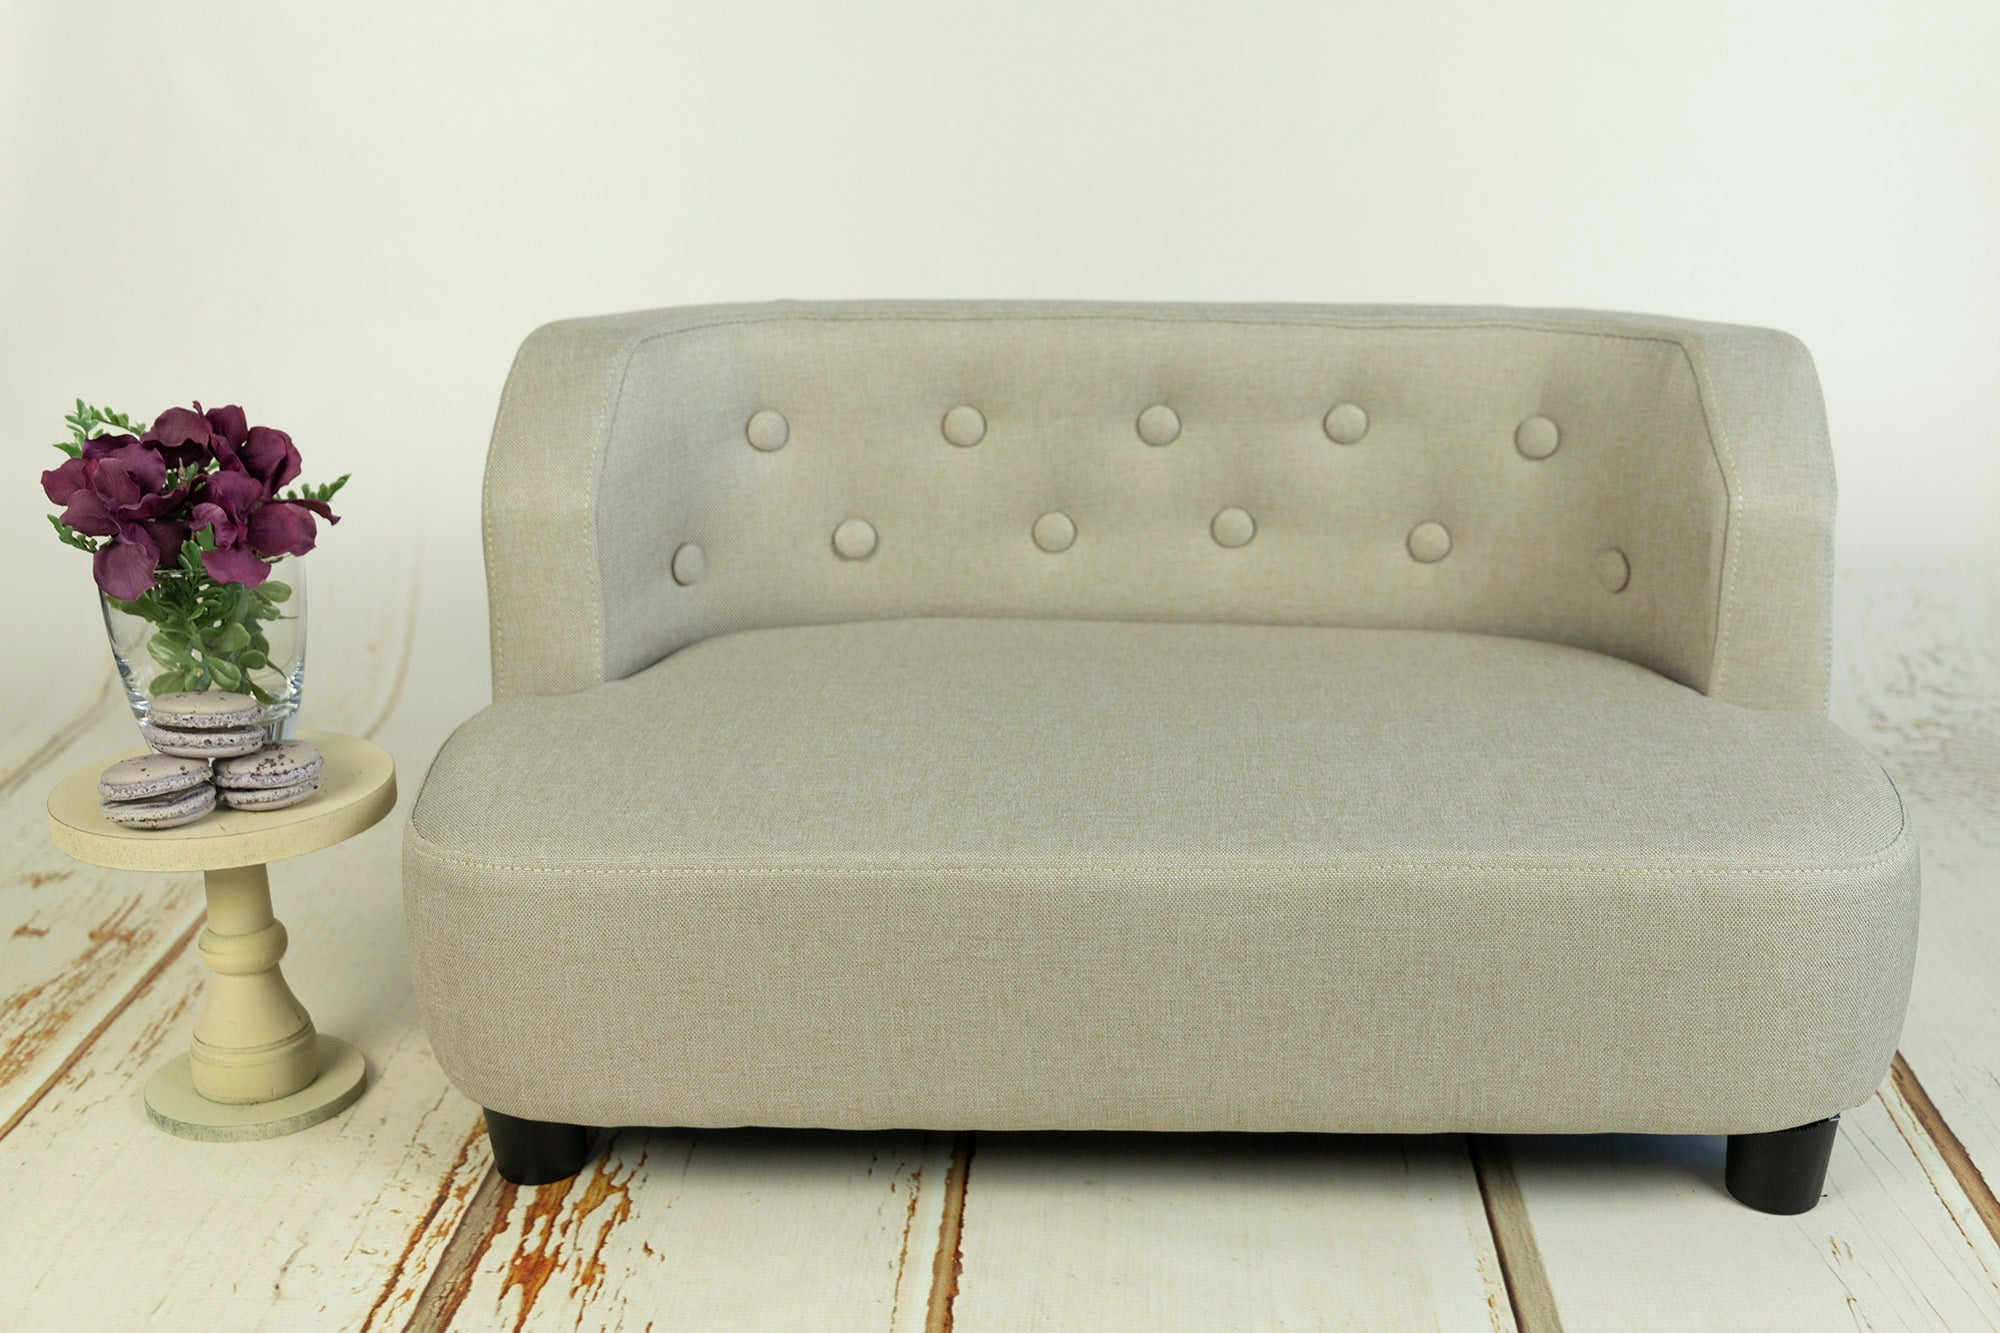 Mini Sofa - Model 10 - Oatmeal